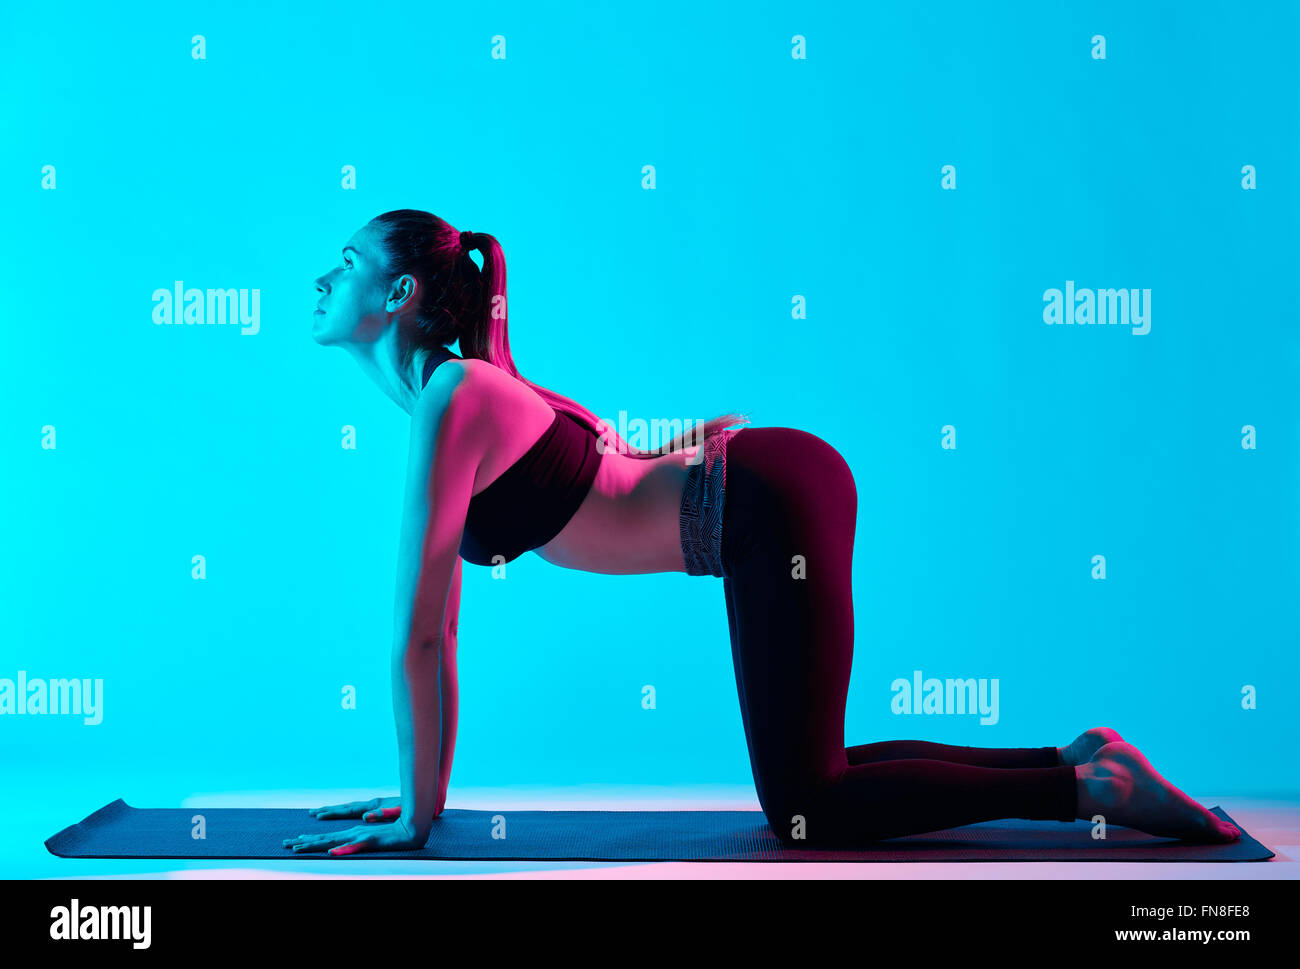 one caucasian woman exercising cat pose yoga exercices  in silhouette studio isolated on blue background - Stock Image